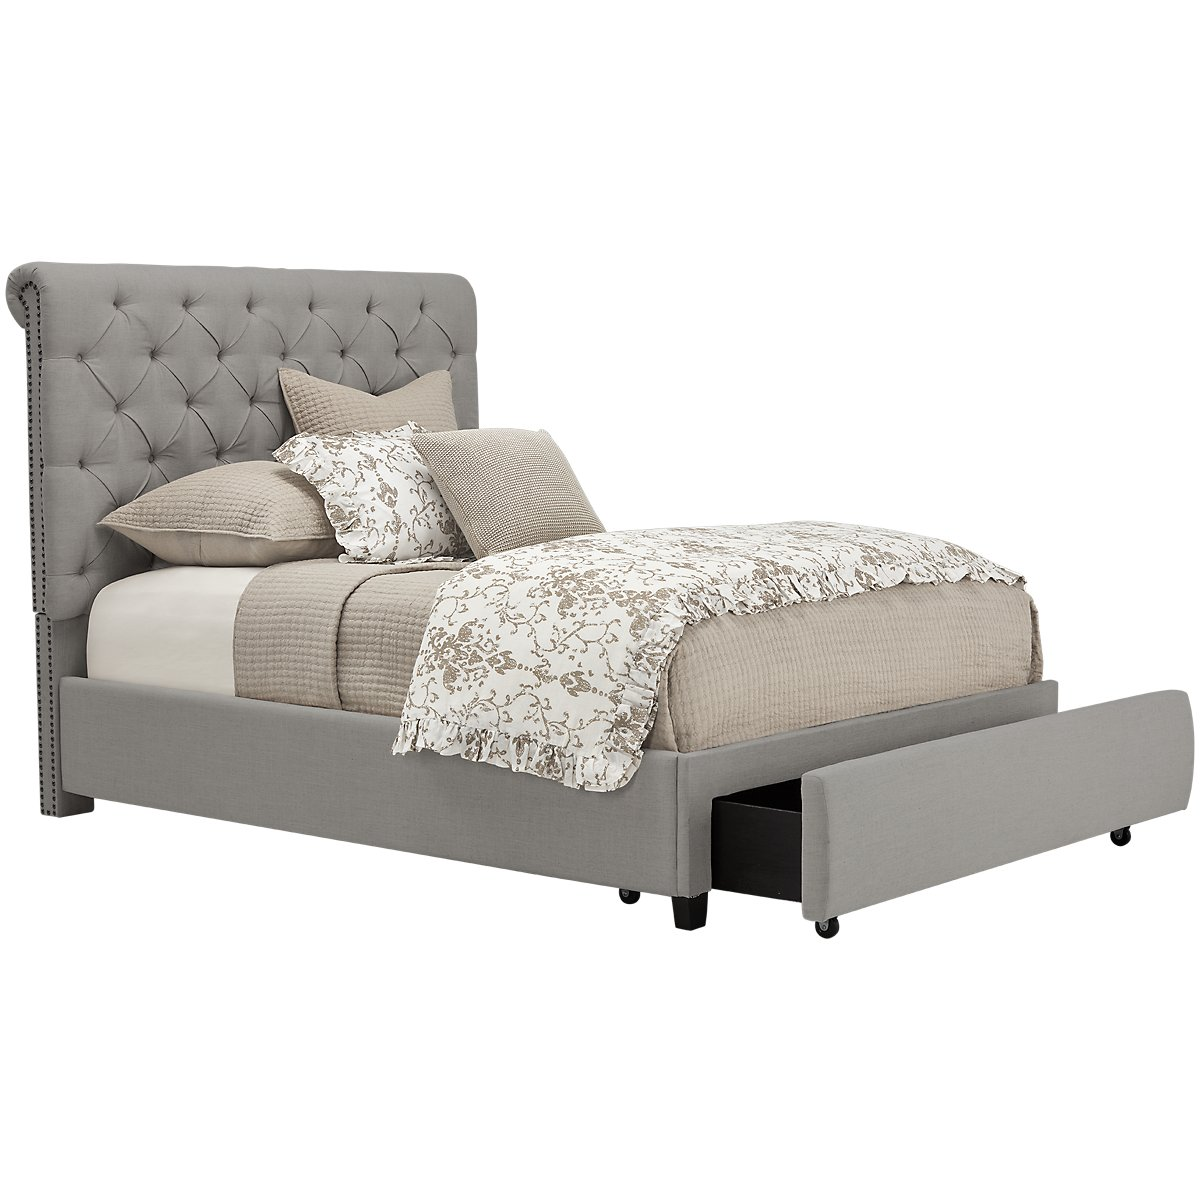 Durham Gray Upholstered Platform Storage Bed